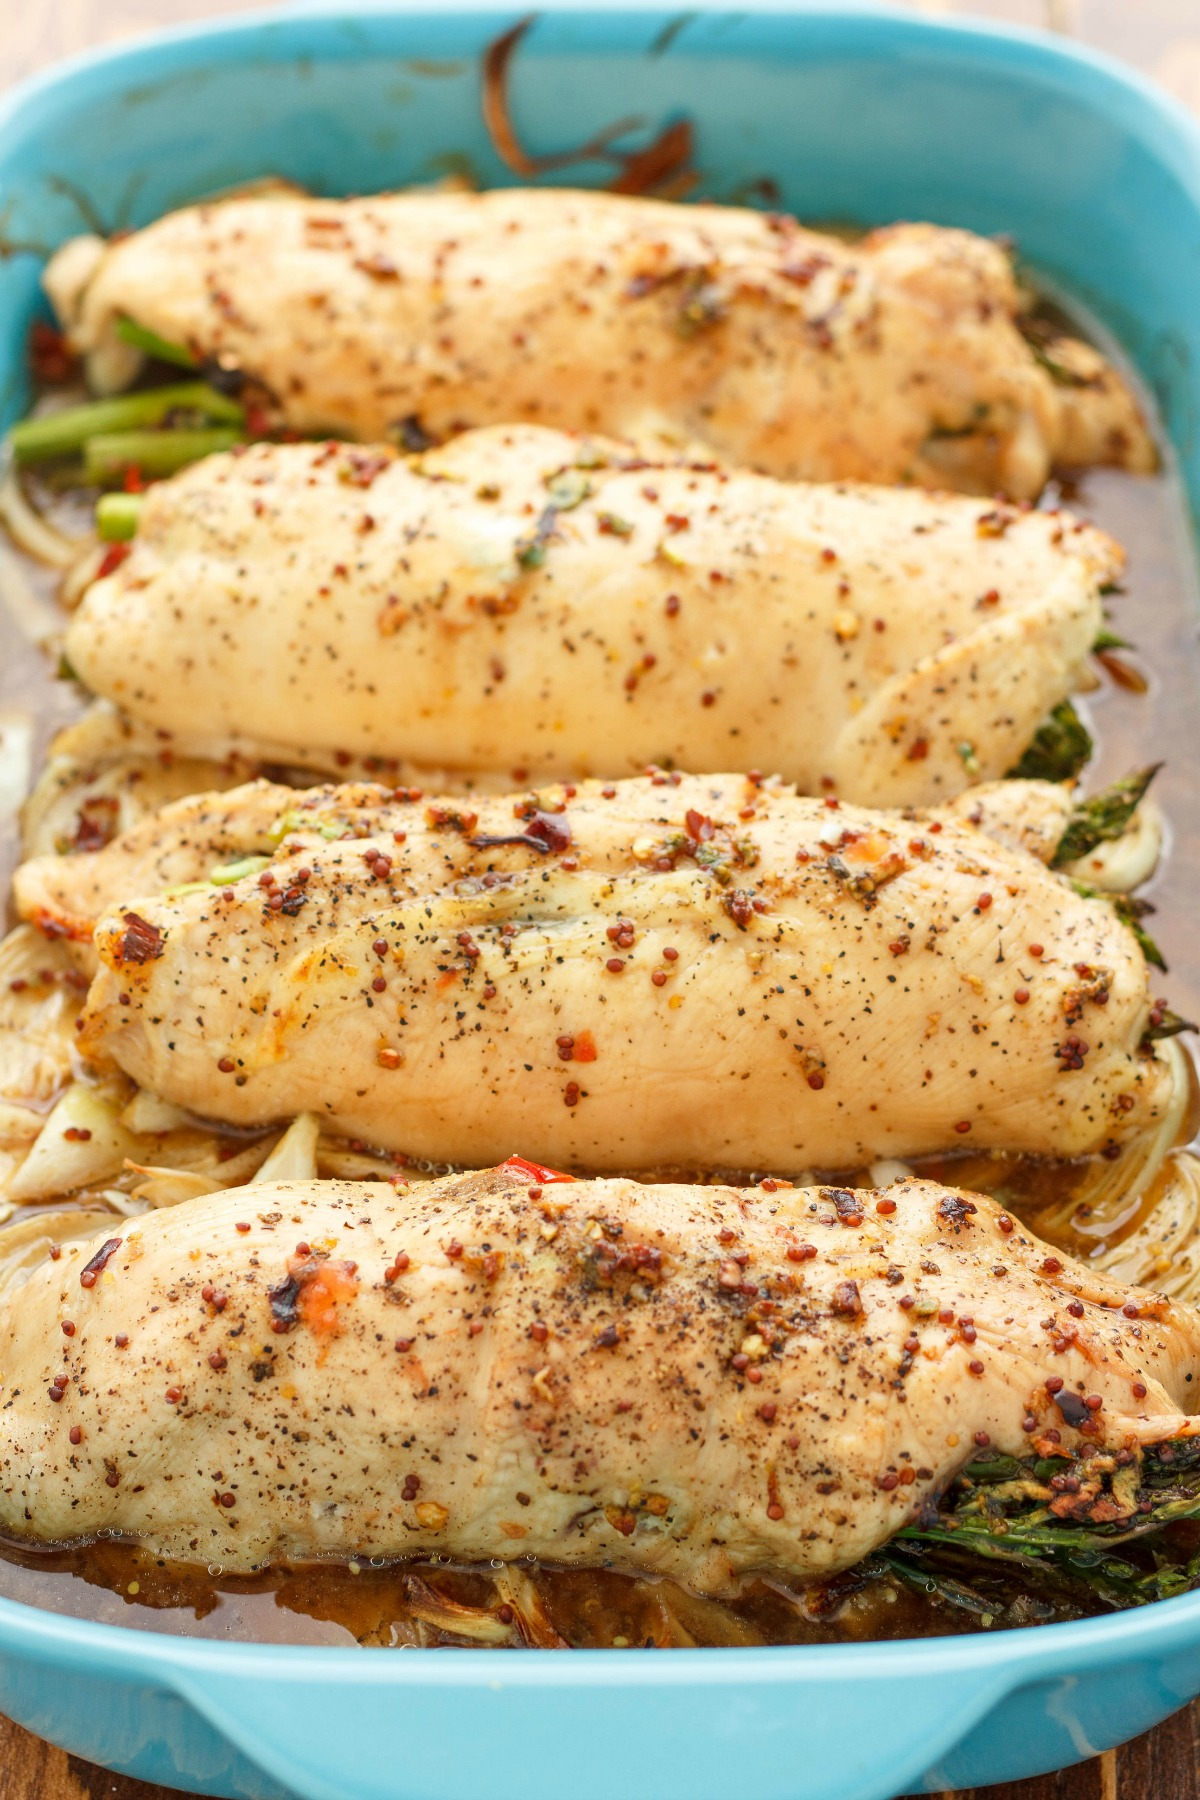 This asparagus stuffed chicken is well worth the minimal effort. Great for guests but easy enough for a weeknight dinner!